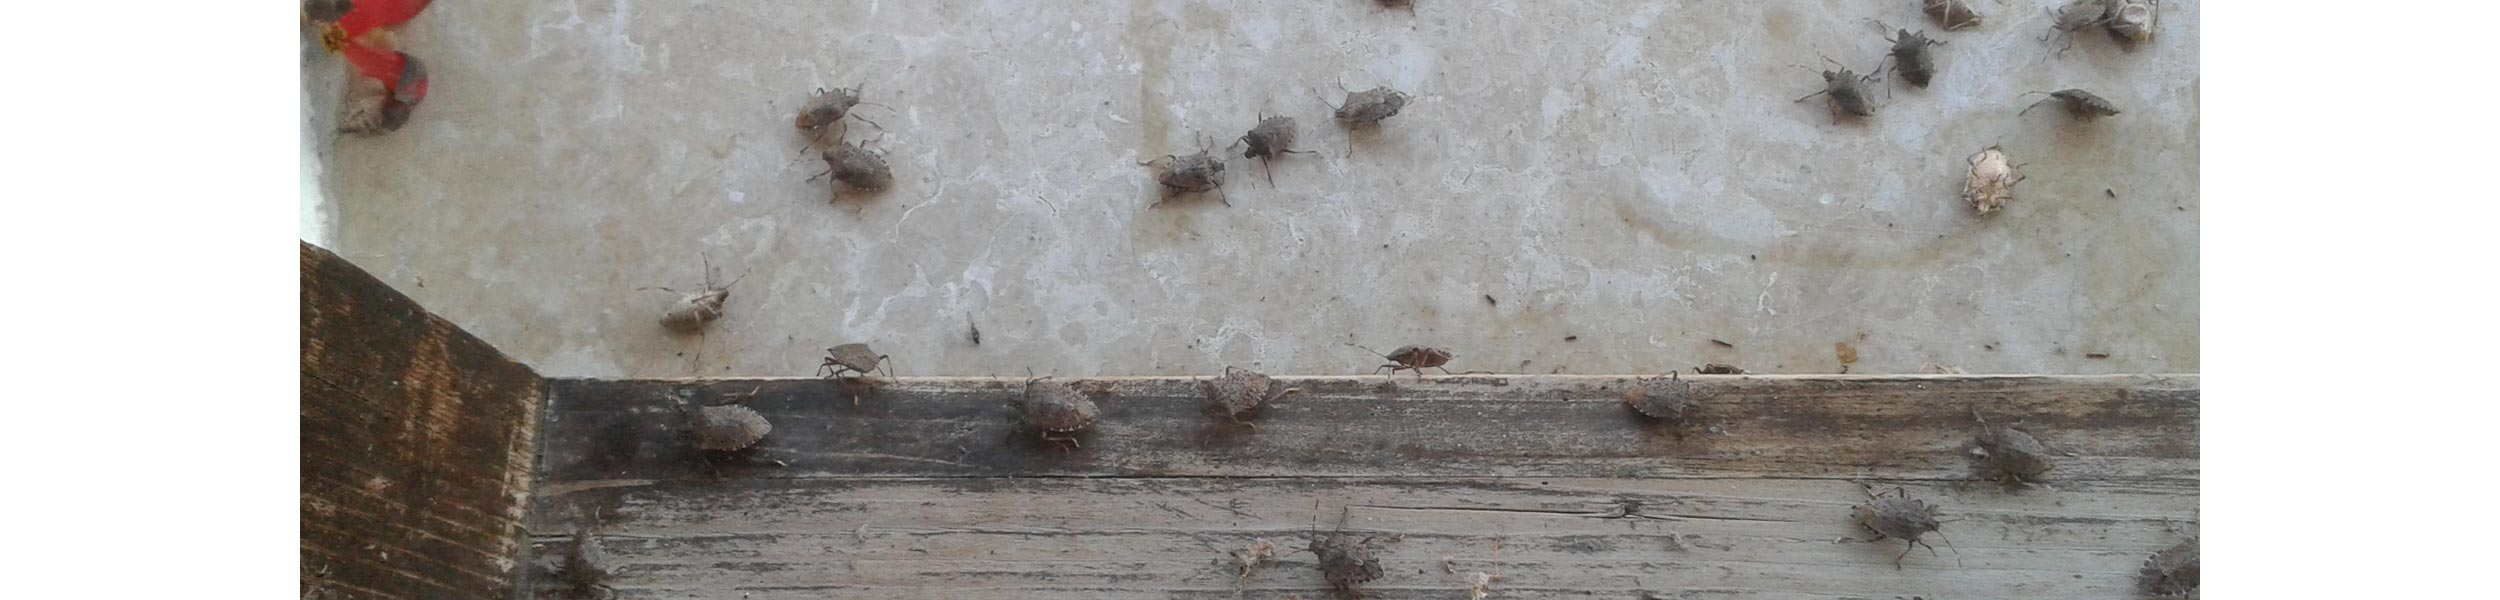 ACE Exterminating-Pest-Services-Stink-Bug-Infestation-Home-Wall-Ceiling-Header